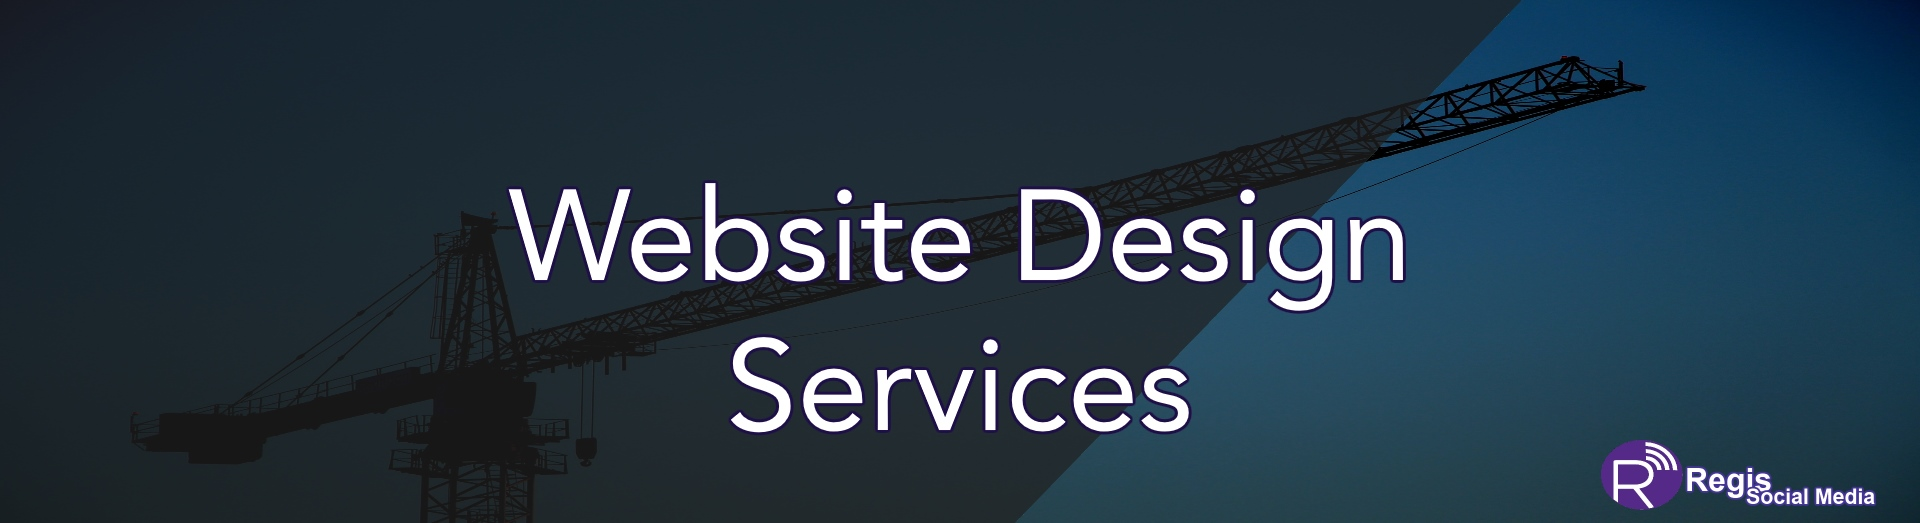 website design services for local small businesses